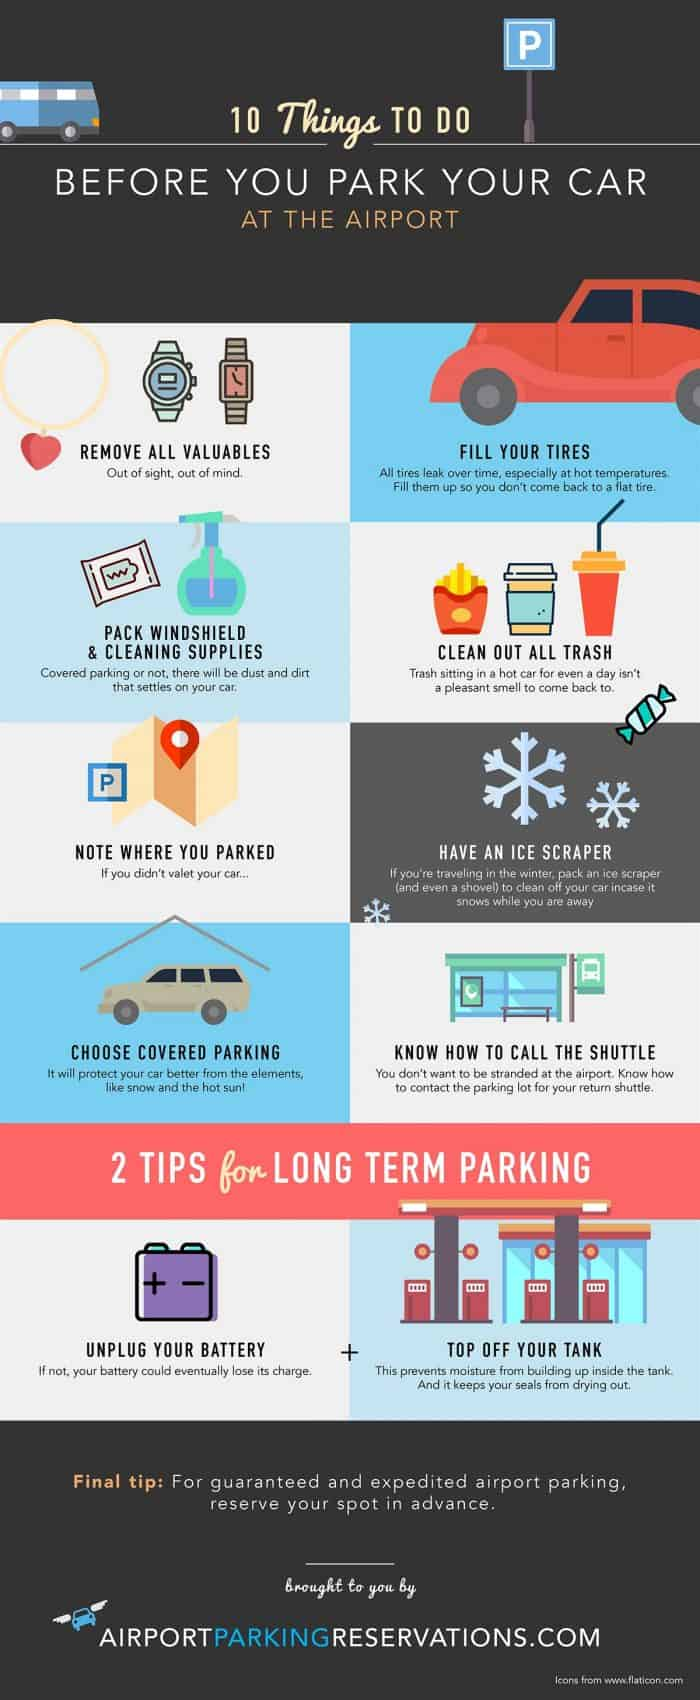 10 Things To Do Before You Park At The Airport